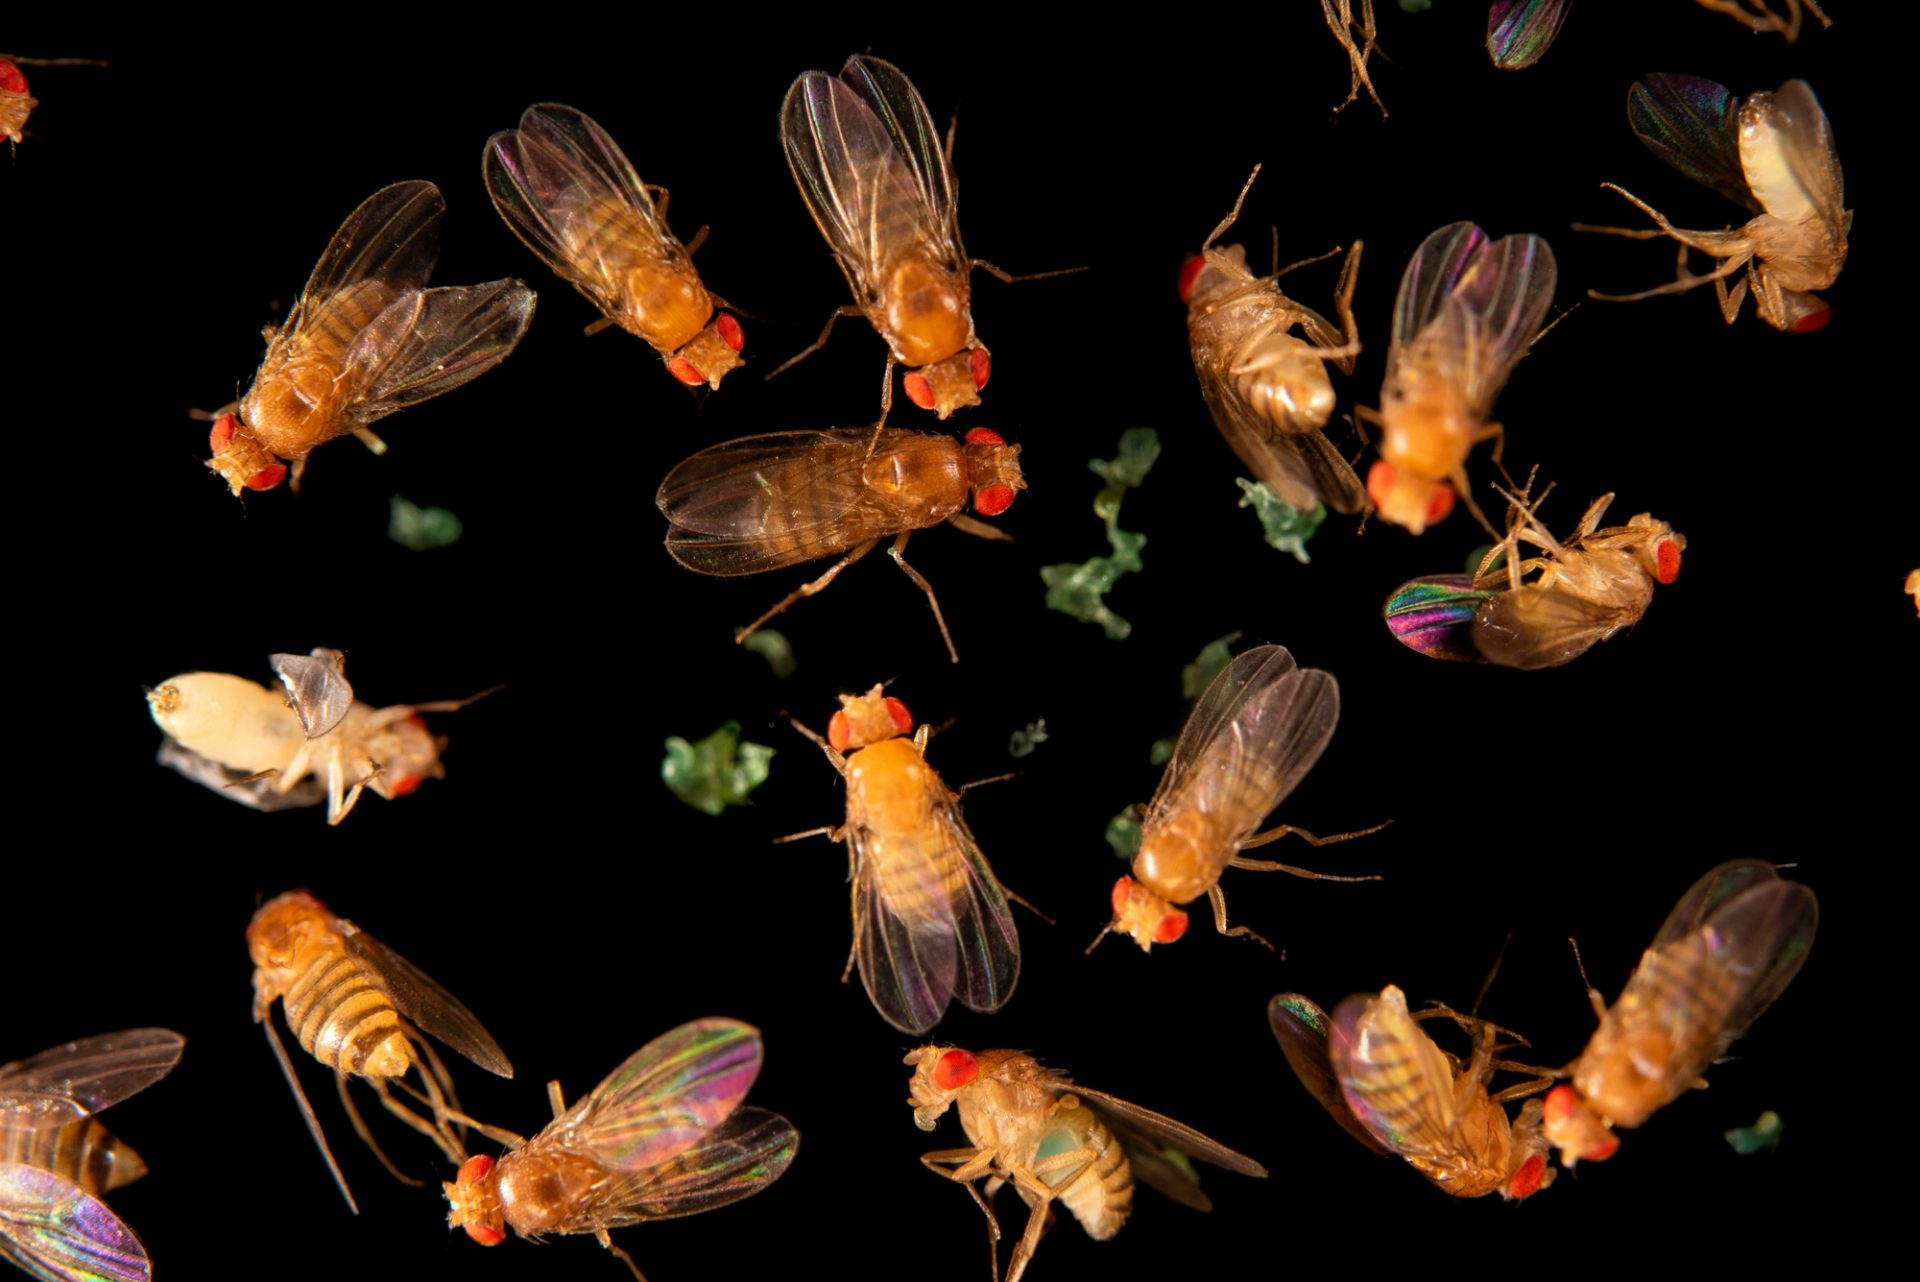 Photo: Red-eyed fruit flies (Drosophila melanogaster) at the Urban Entomology Lab at the University of Florida at Gainesville.